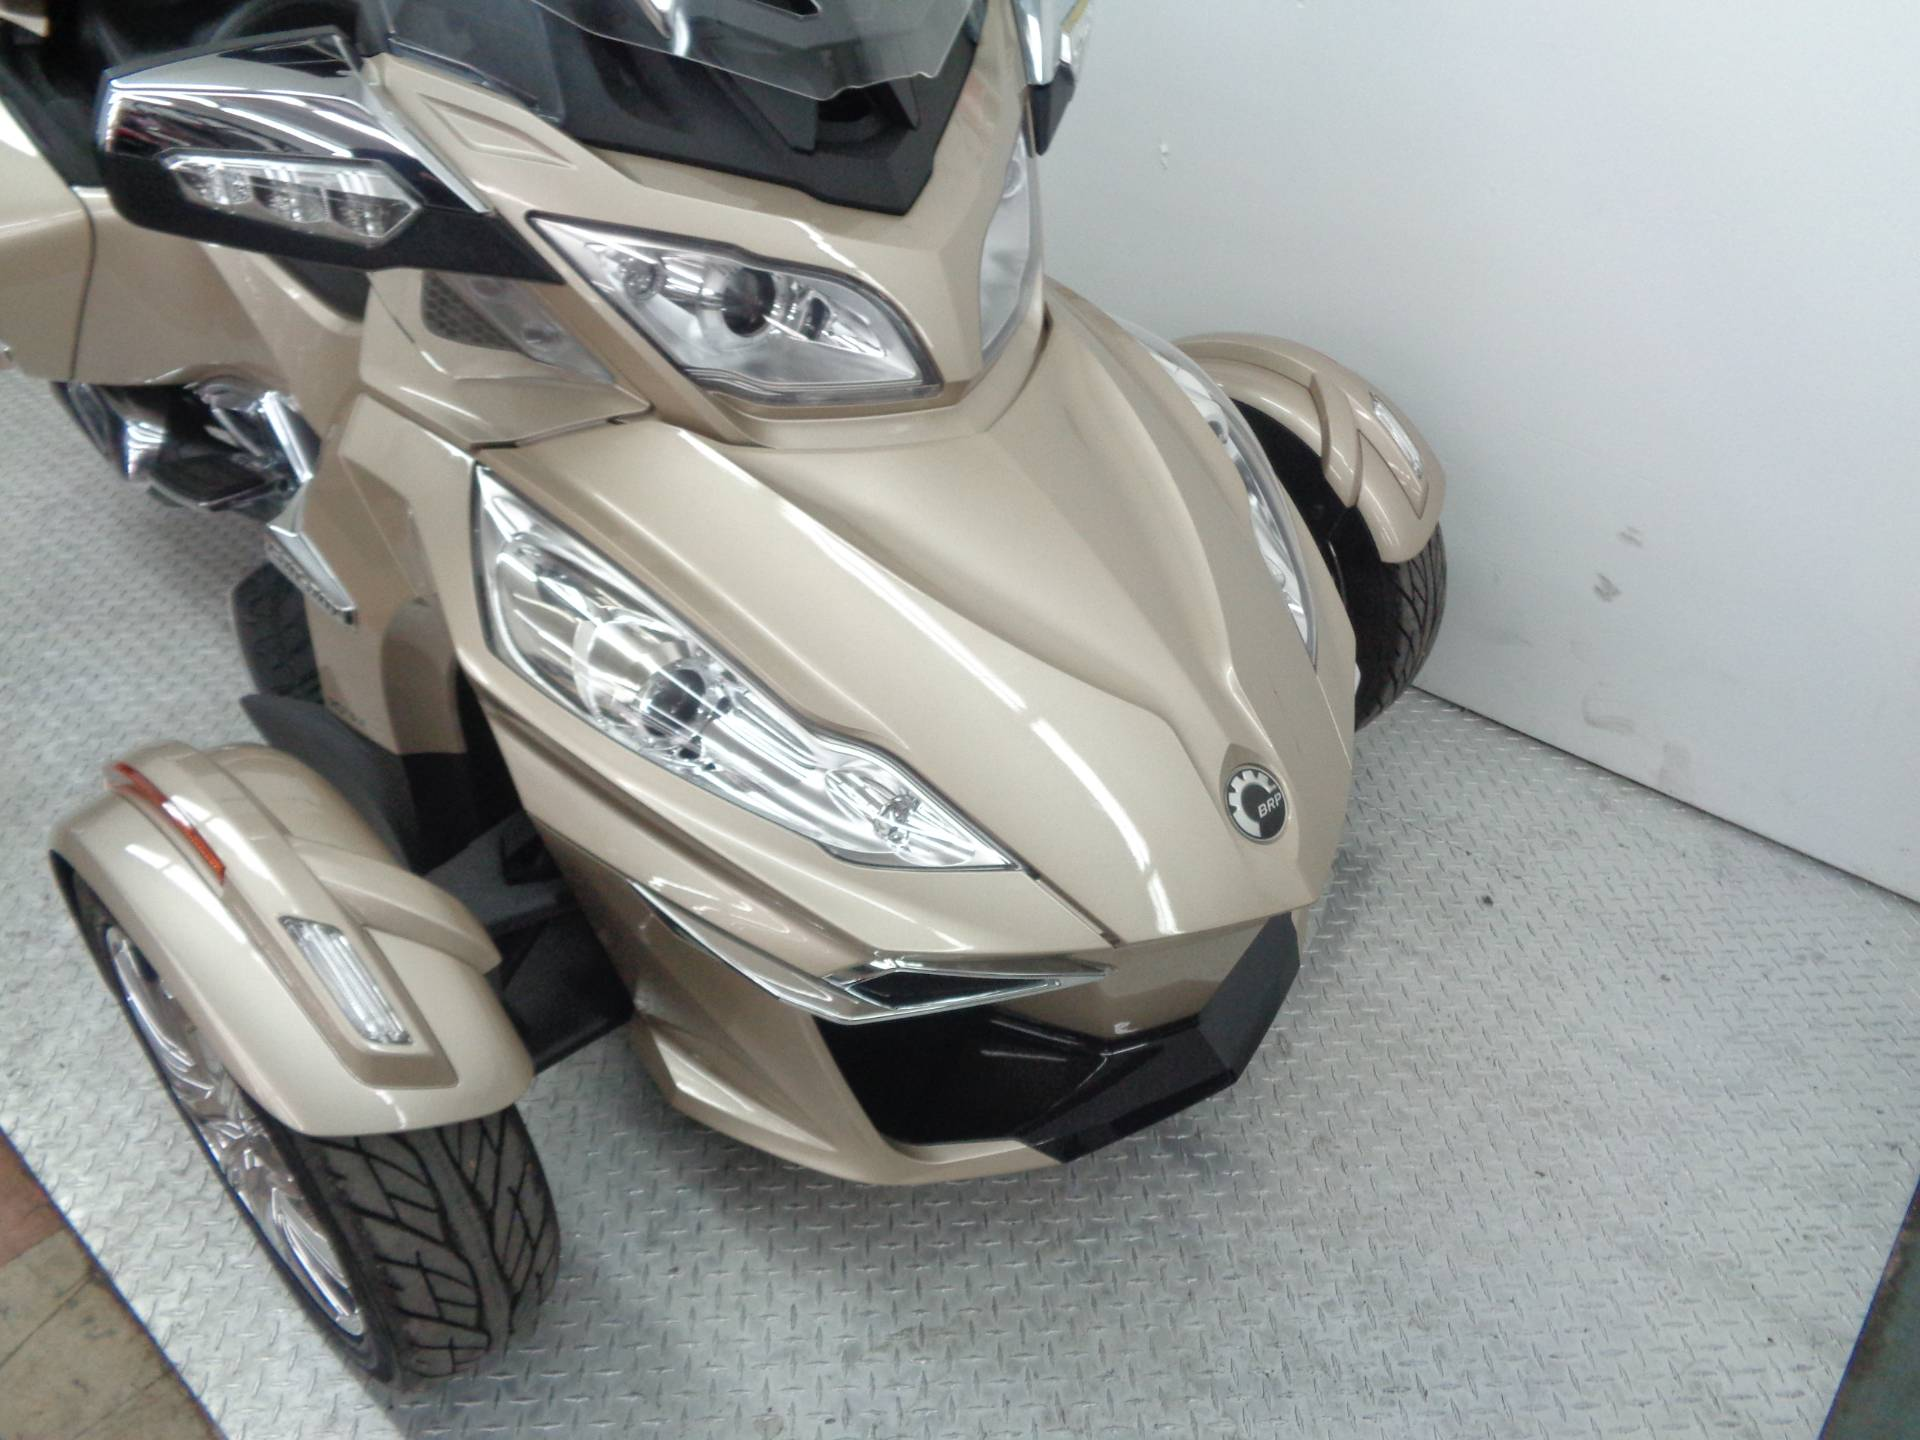 2017 Can-Am Spyder RT Limited in Tulsa, Oklahoma - Photo 3